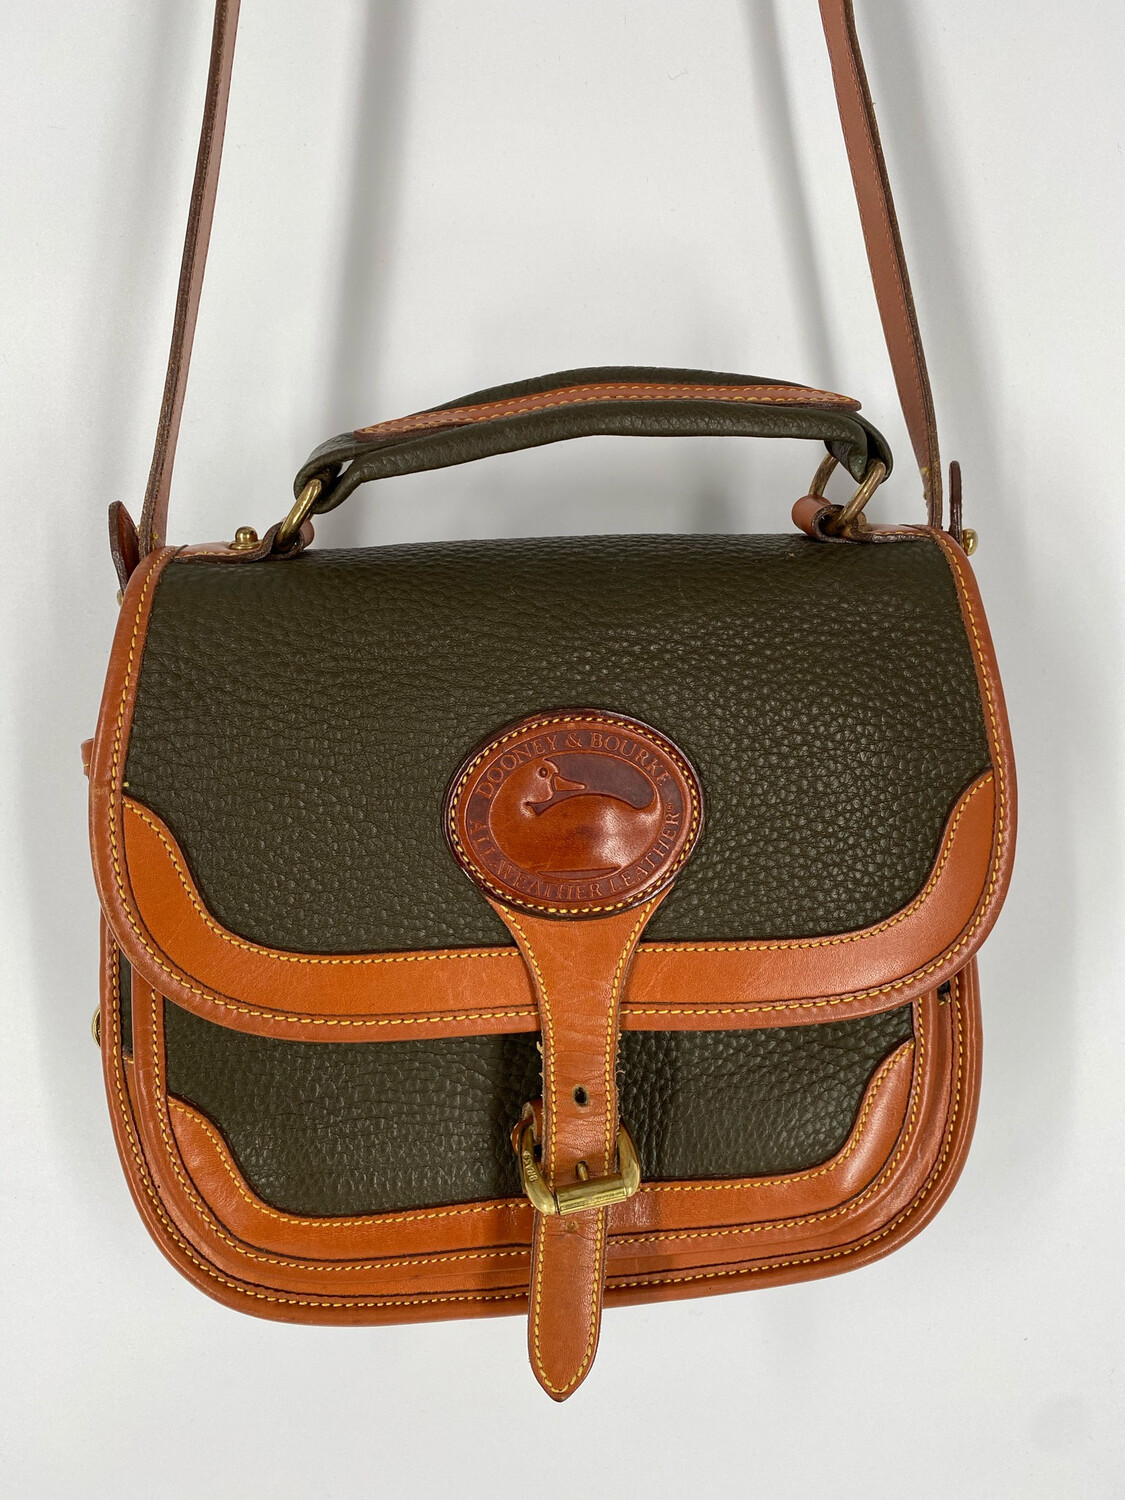 Dooney & Bourke Leather Crossbody Handle Bag